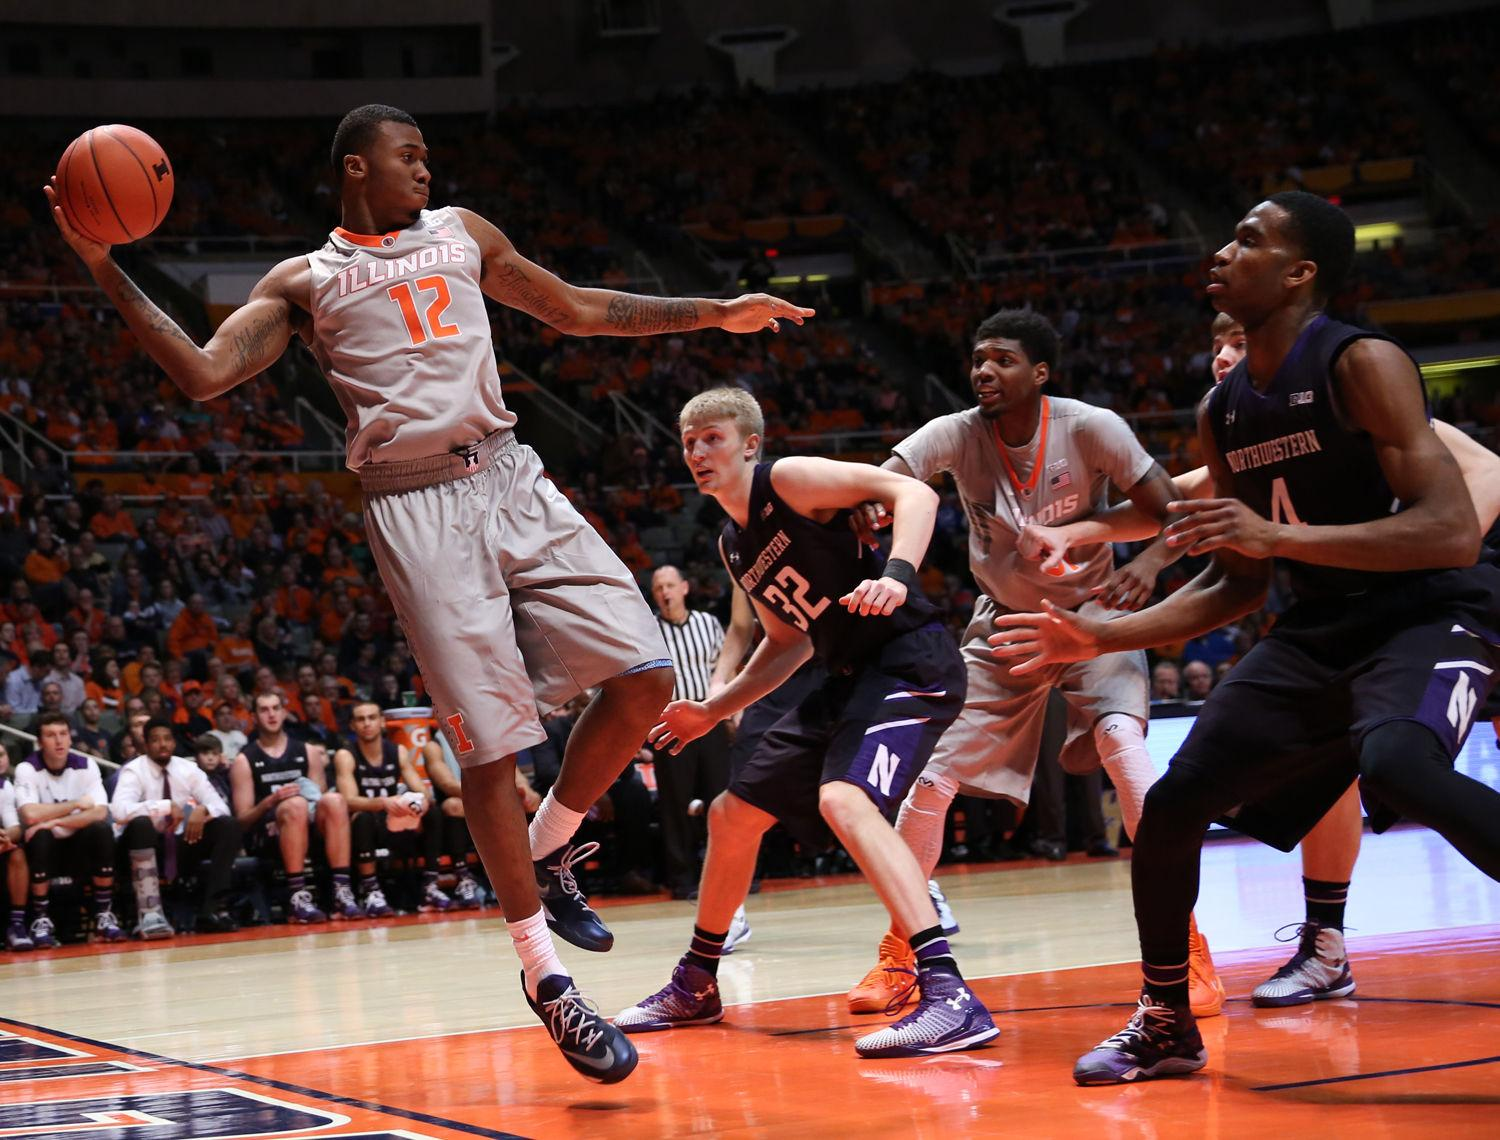 Illinois' Leron Black (12) attempts to save the ball from going out of bounds during the game against Northwestern at State Farm Center, on Saturday, Feb. 28, 2015. The Illini won 86-60.